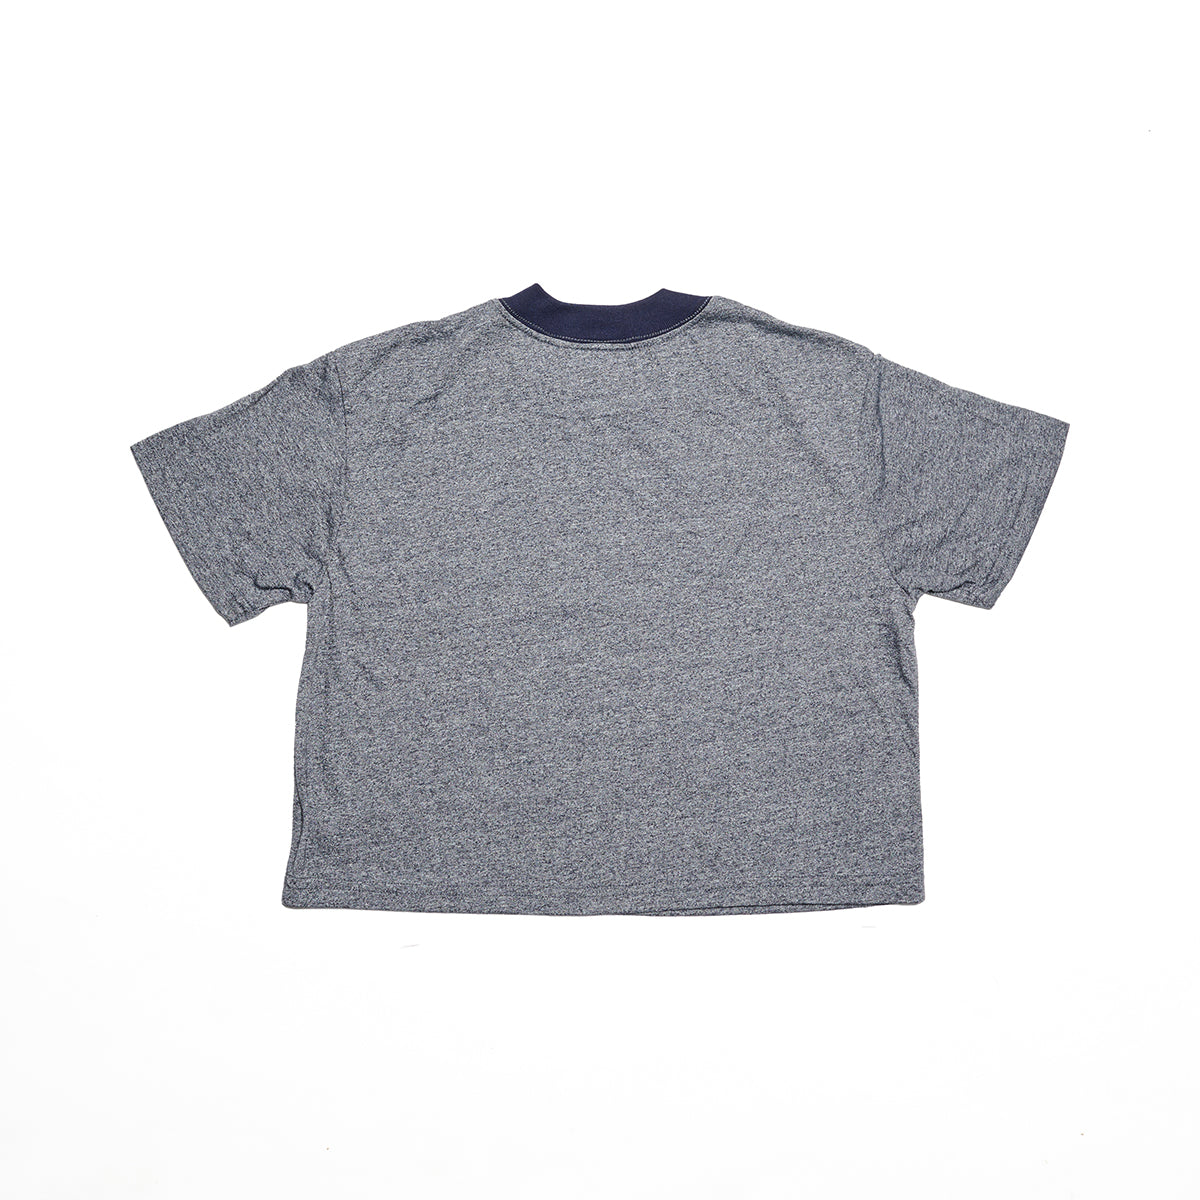 East West Shop x Badtz-Maru Mock Neck Crop Tee